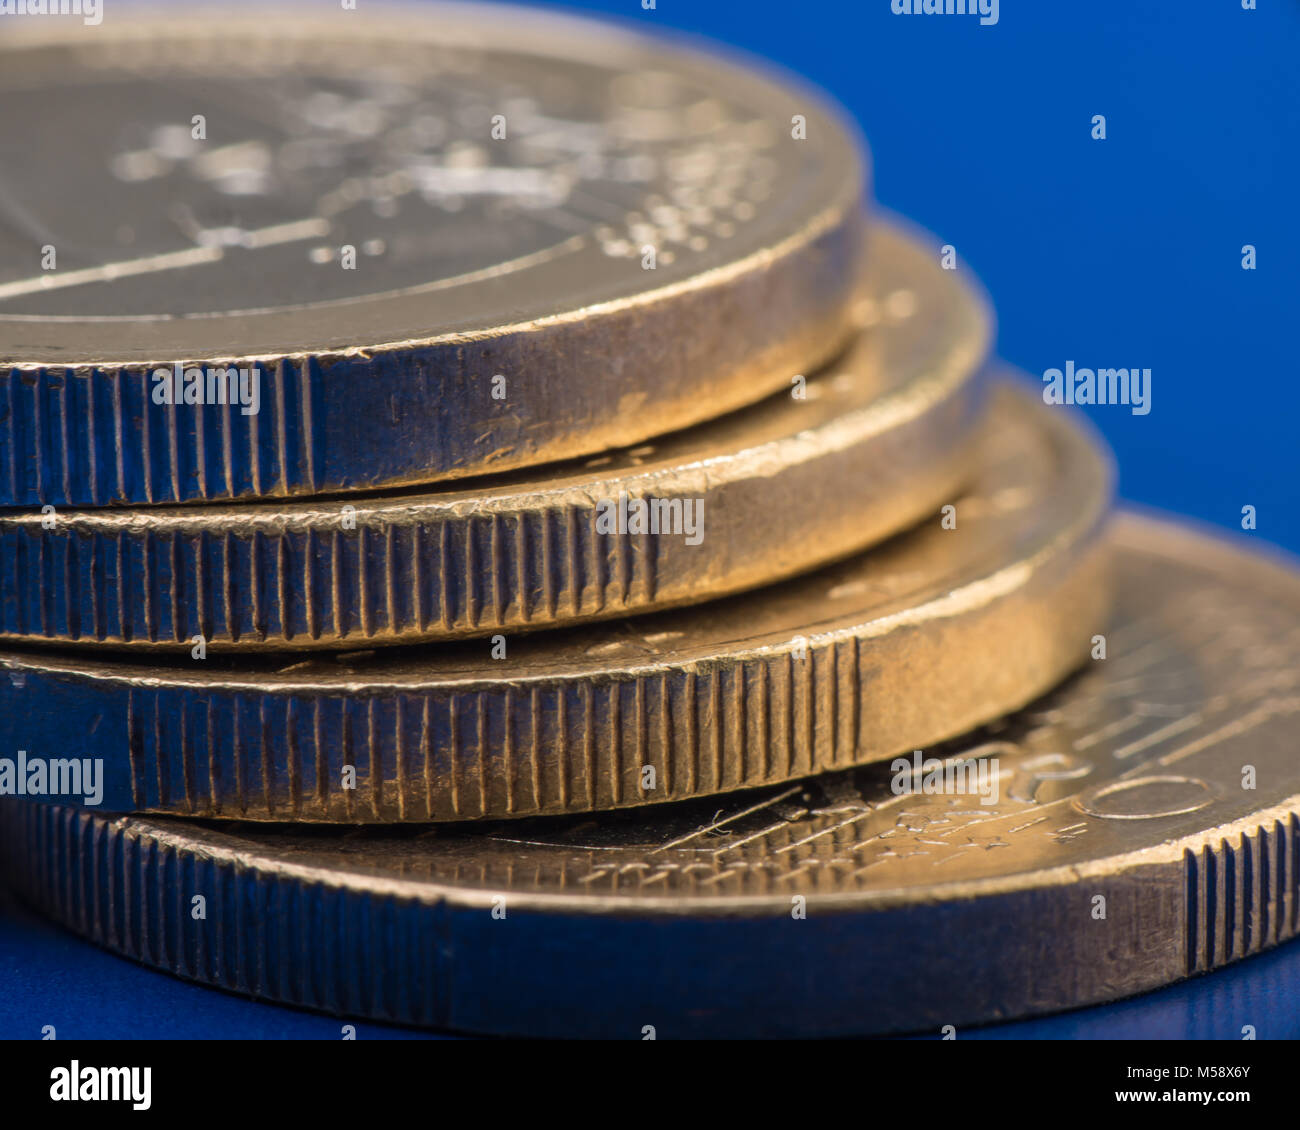 stack of coins is one euro. Euro money. Dark background. Currency of the European Union. - Stock Image